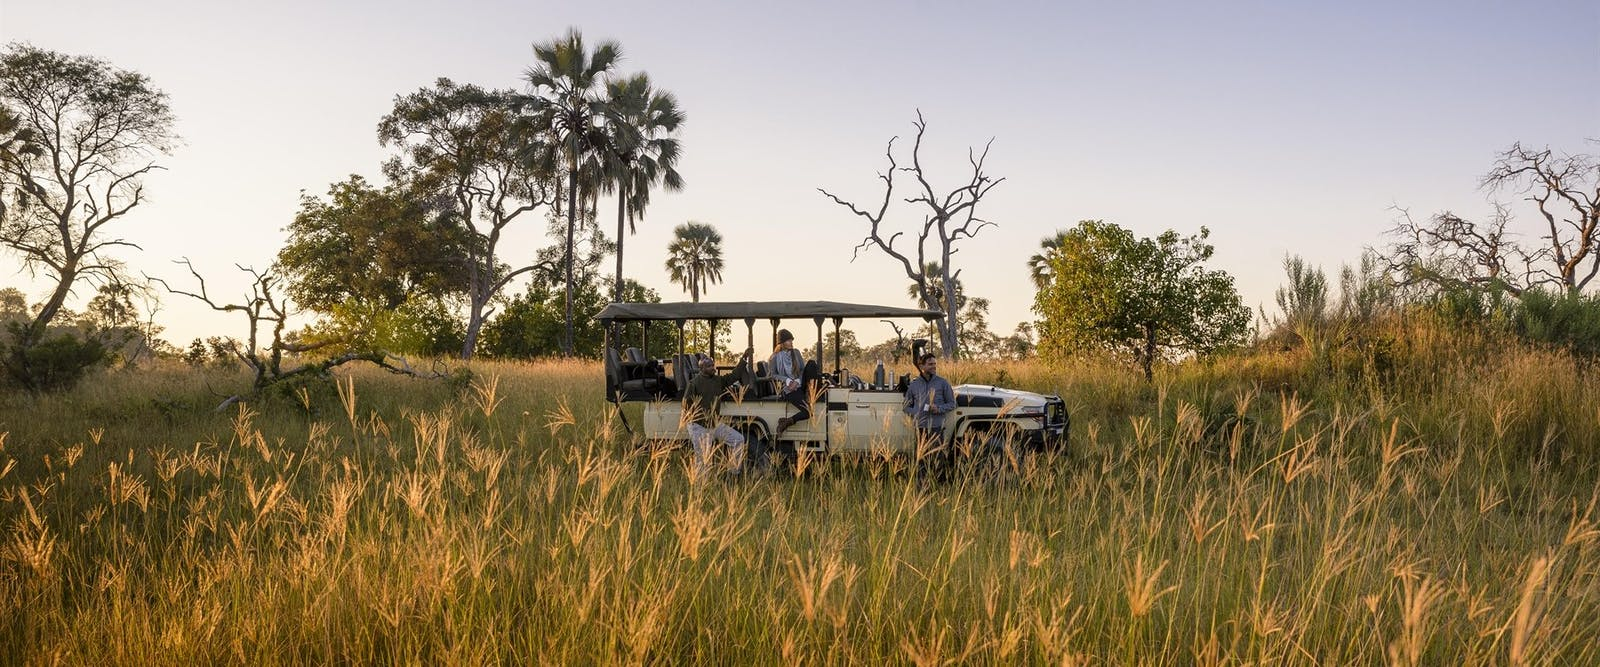 Game Drive at Sanctuary Stanley's Camp, Botswana